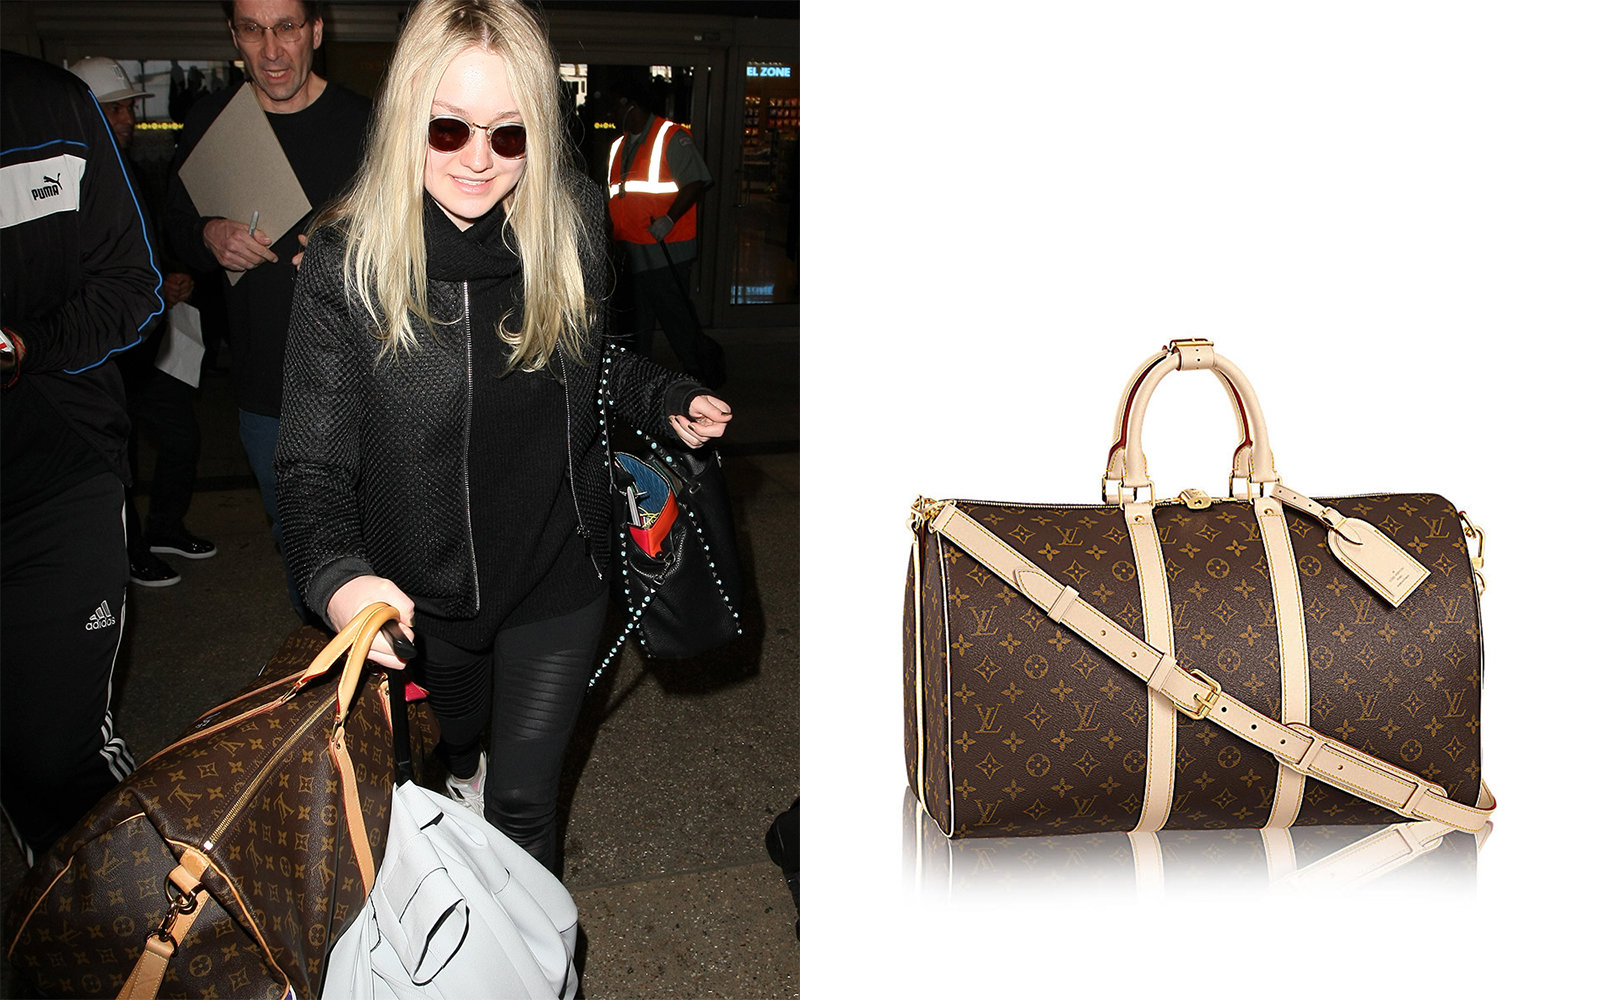 Louis Vuitton Dakota Fanning Celebrity Luggage